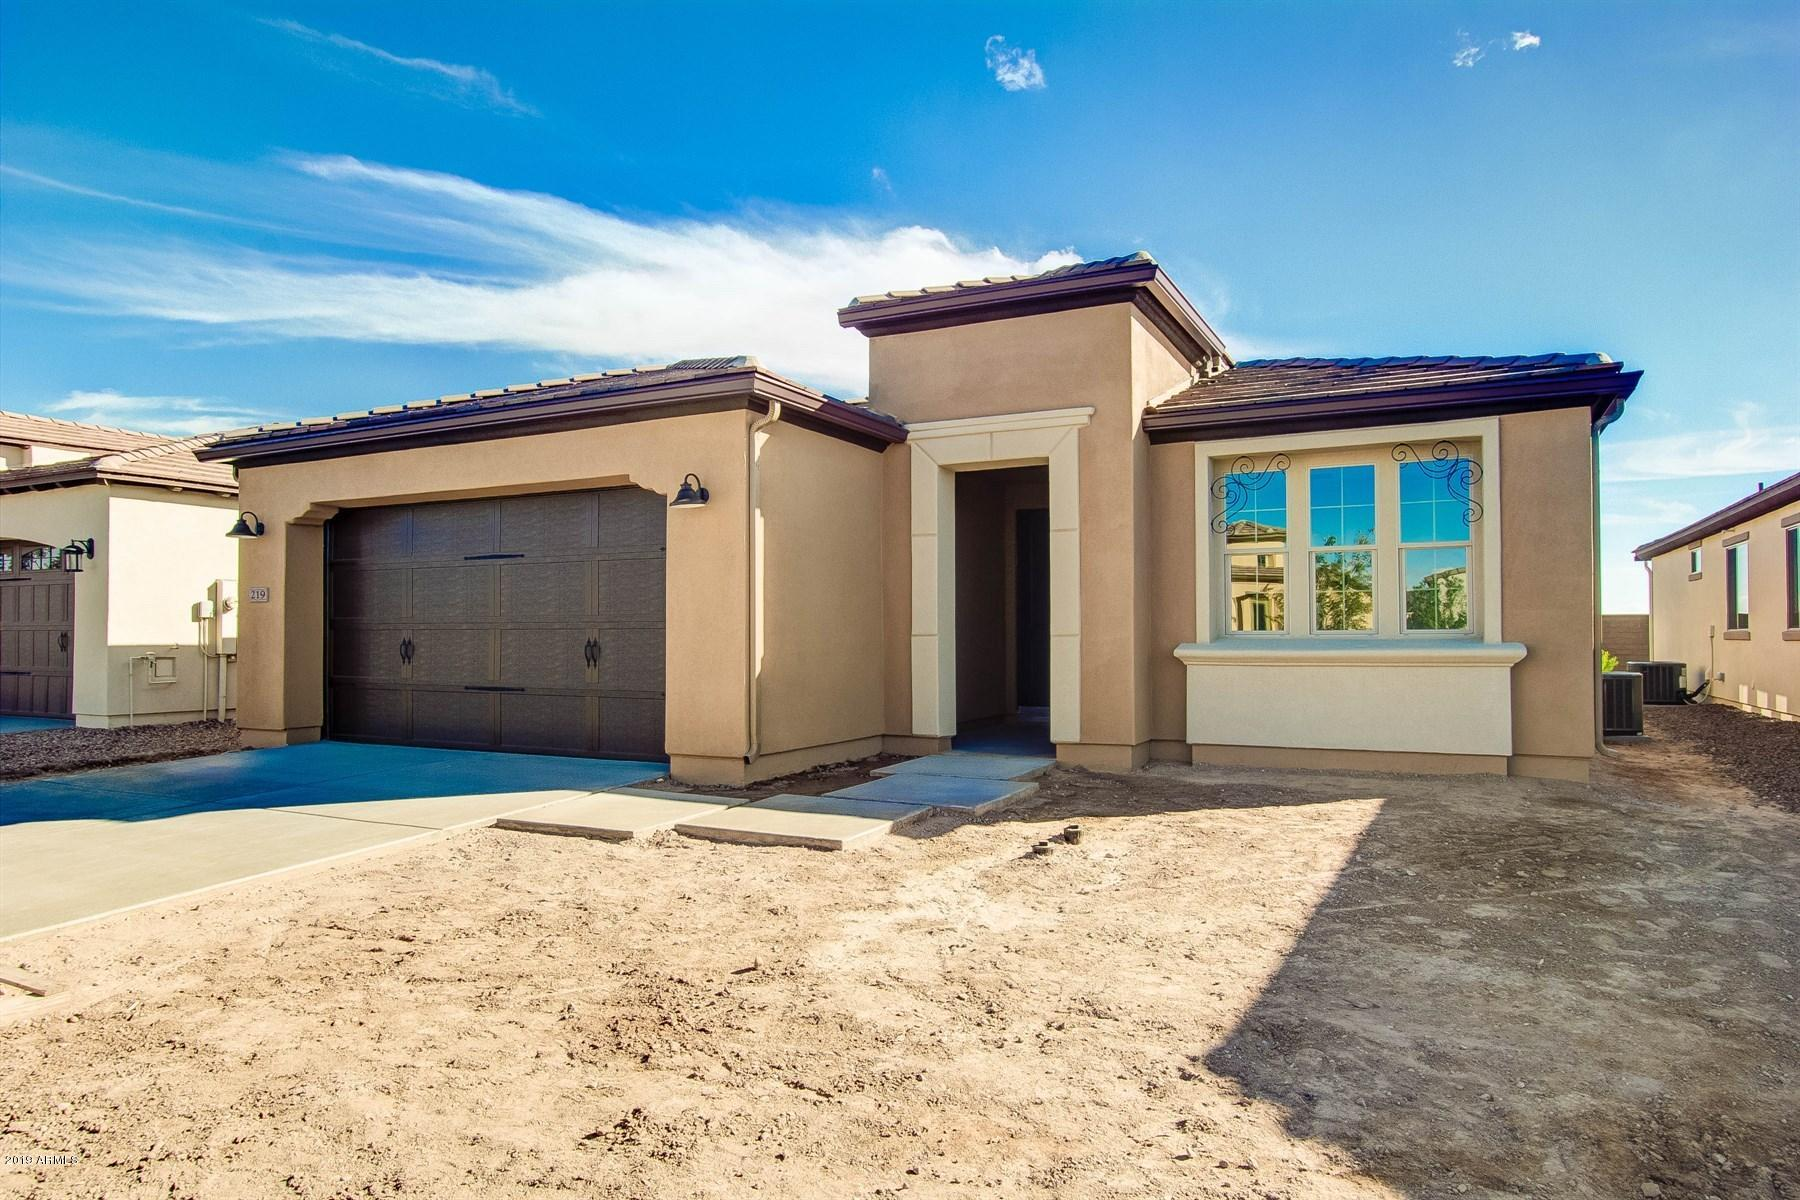 Photo of 219 E ALCATARA Avenue, San Tan Valley, AZ 85140